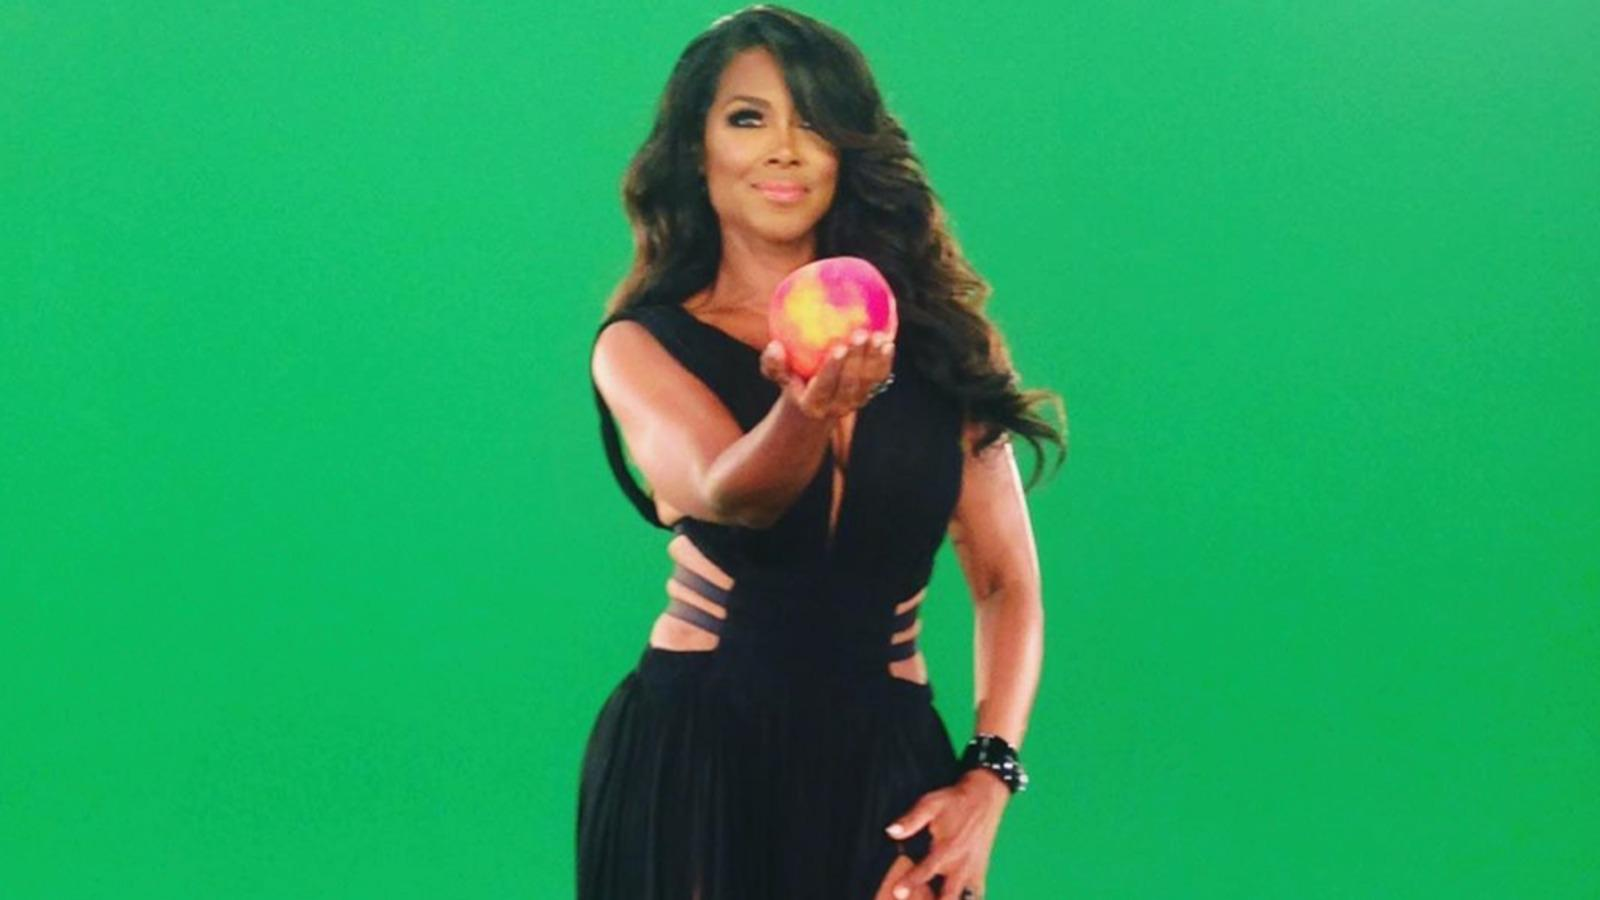 Kenya Moore's Fans Are Calling Her The 'Black Barbie'